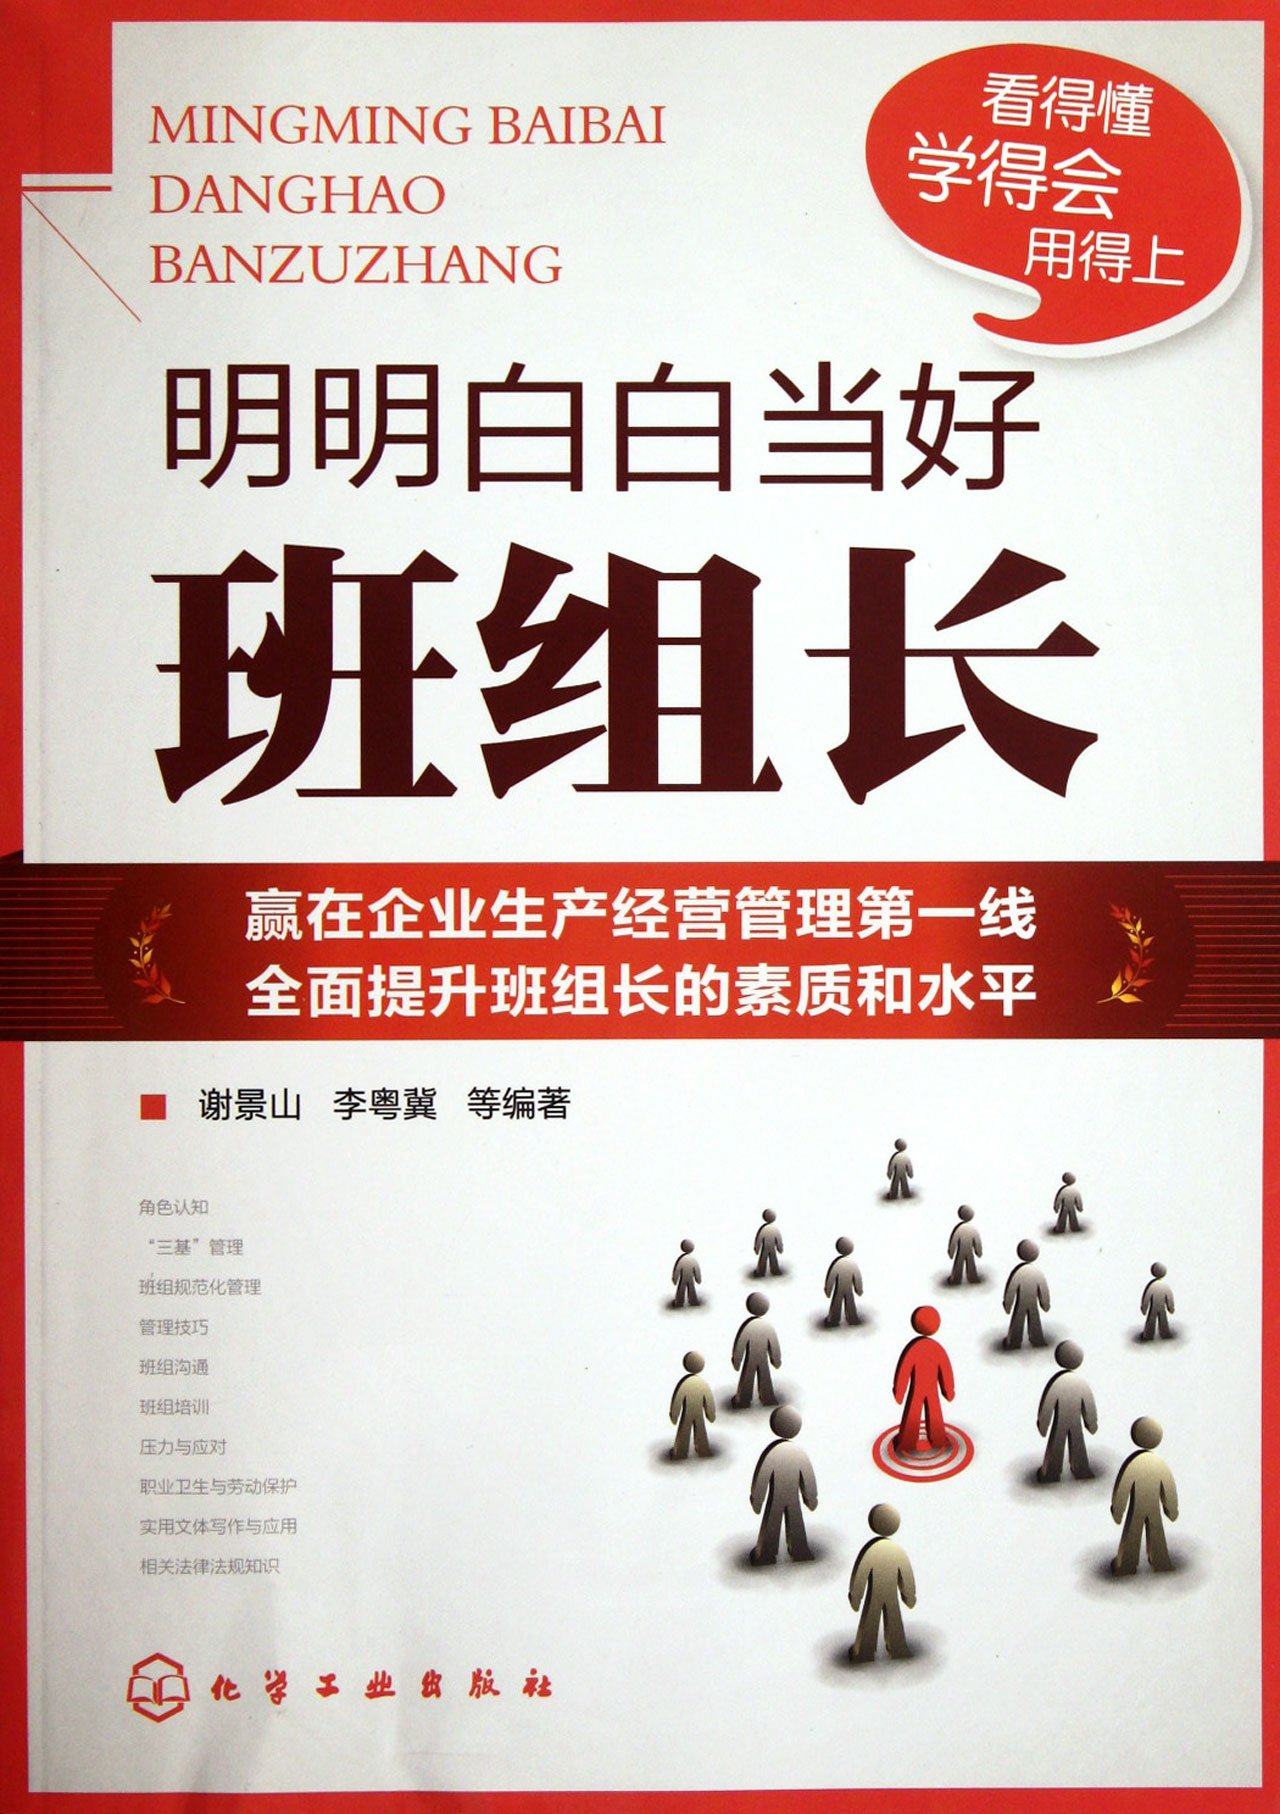 Download to be a good team leader flatly (Chinese Edition) PDF